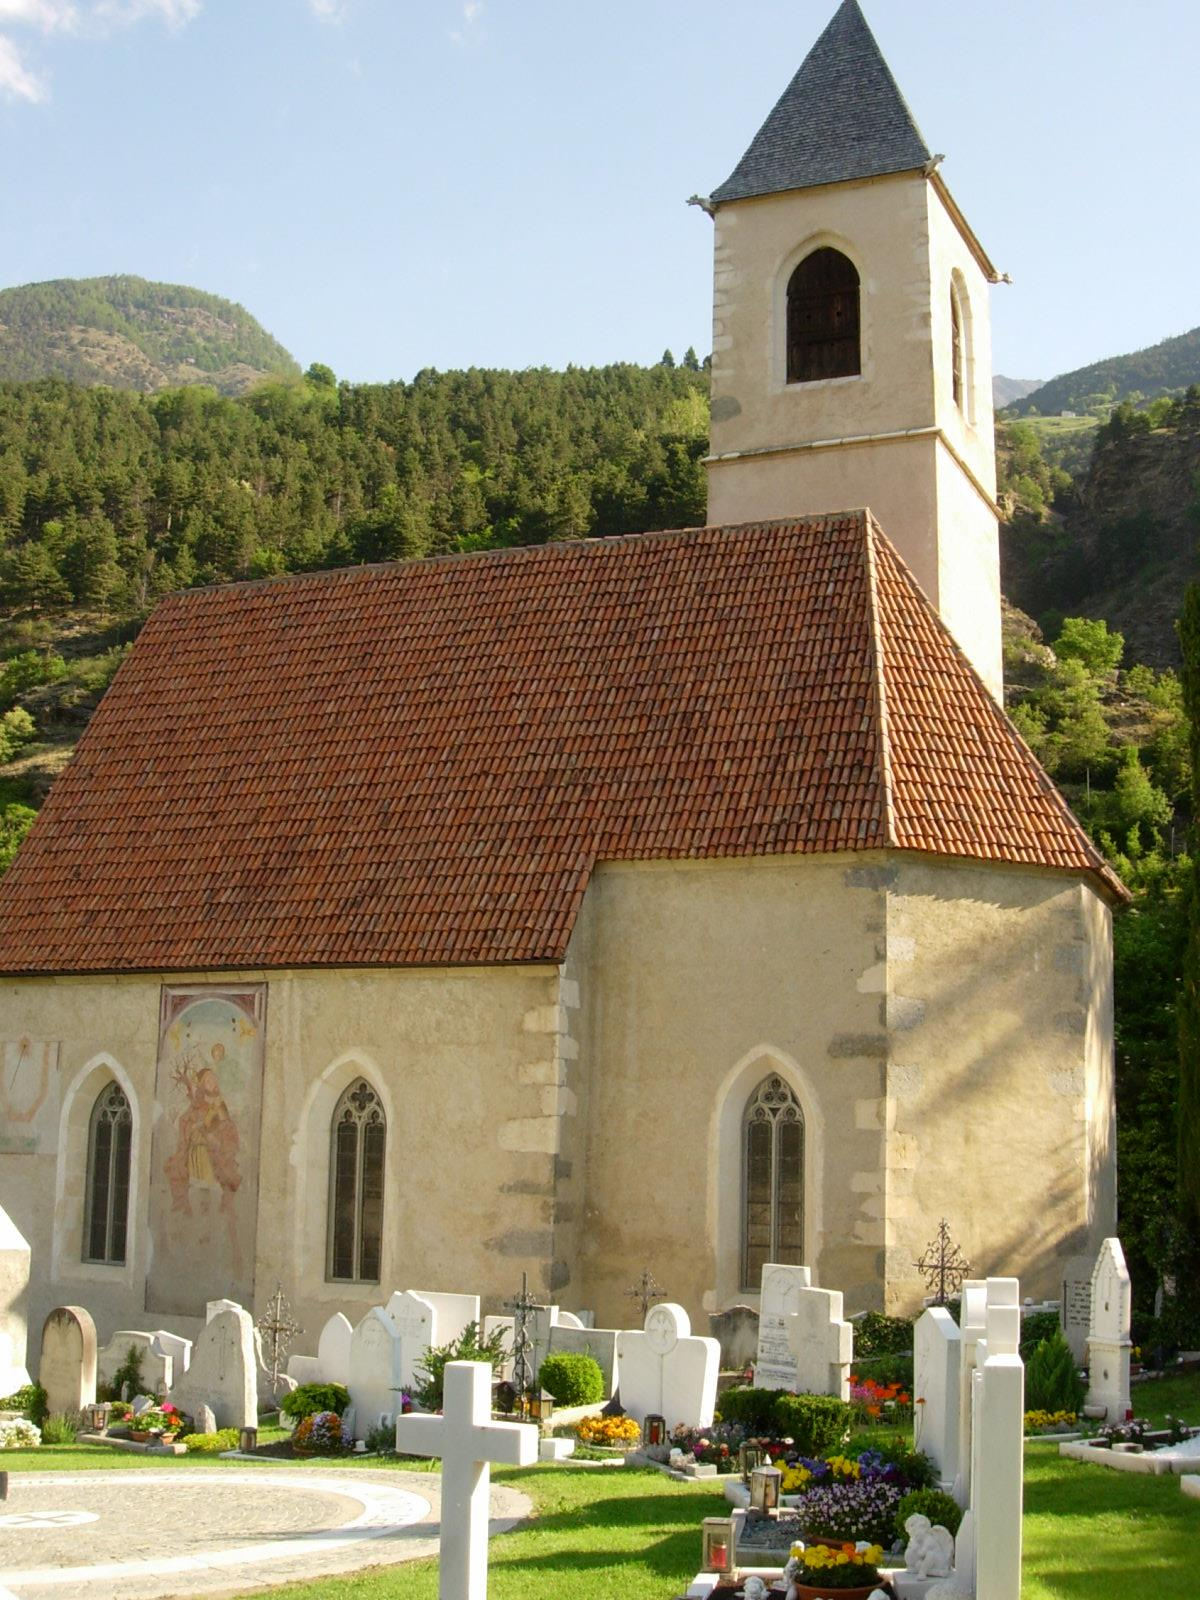 Parish church S. Luzius